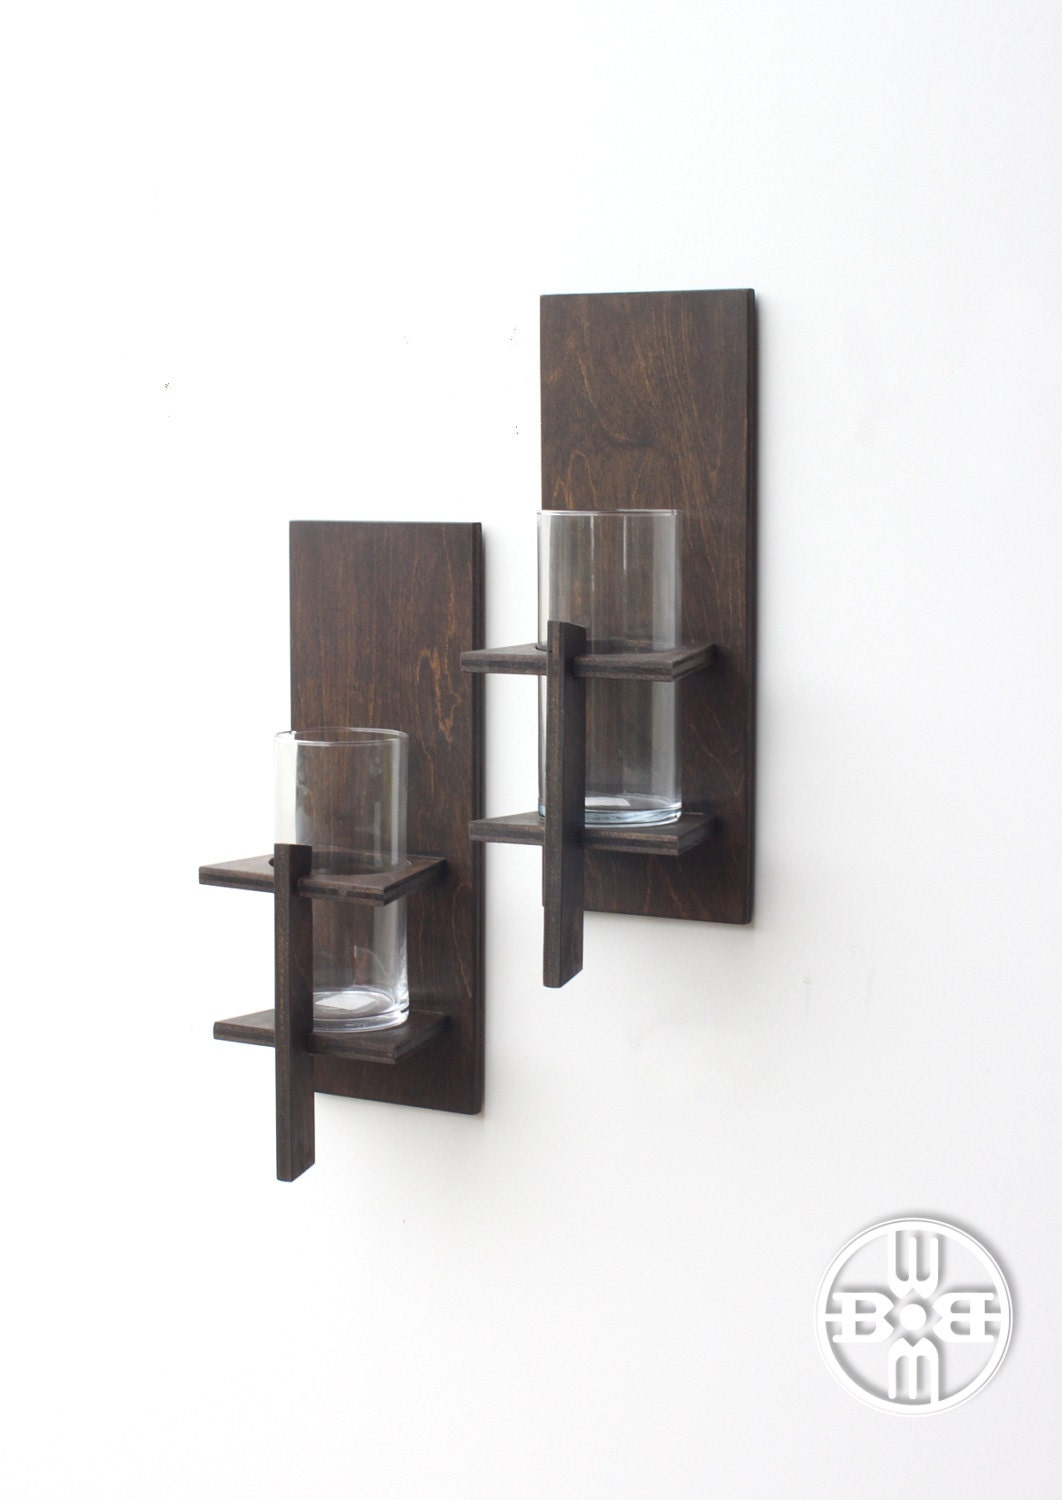 Wall sconces pair rustic decor candle sconces rustic - Decorative wall sconce ...